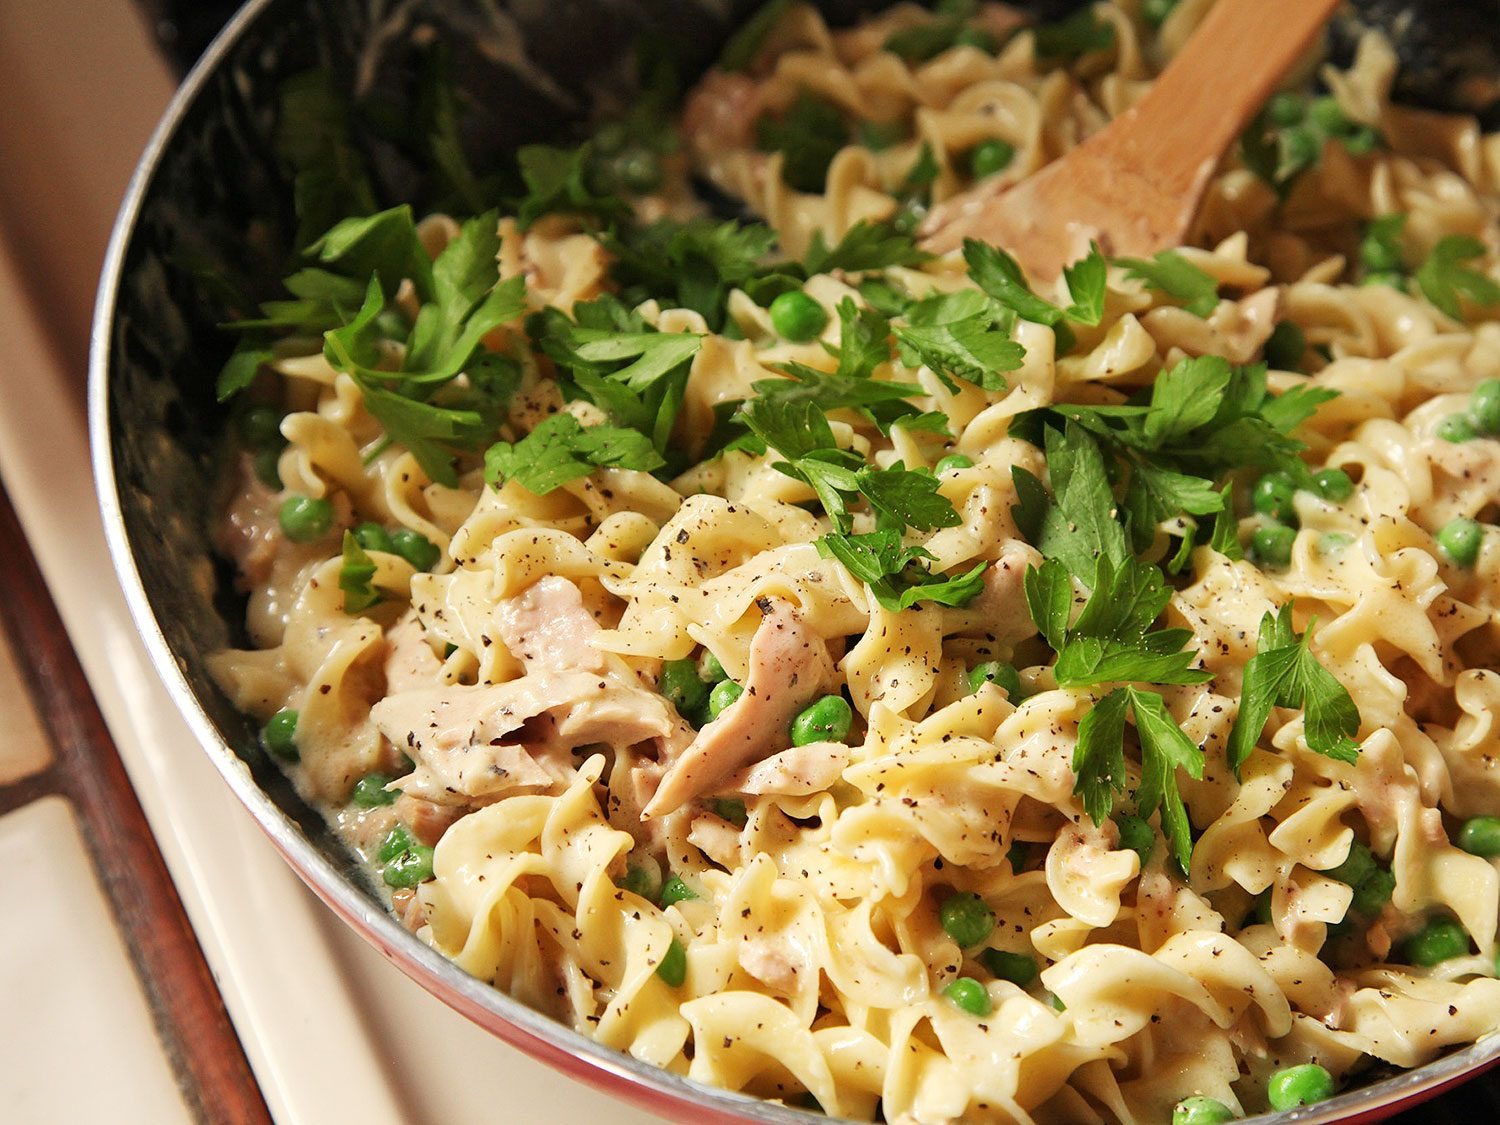 Easy One-Pot, No-Knife, Lighter Tuna Noodle Casserole Recipe